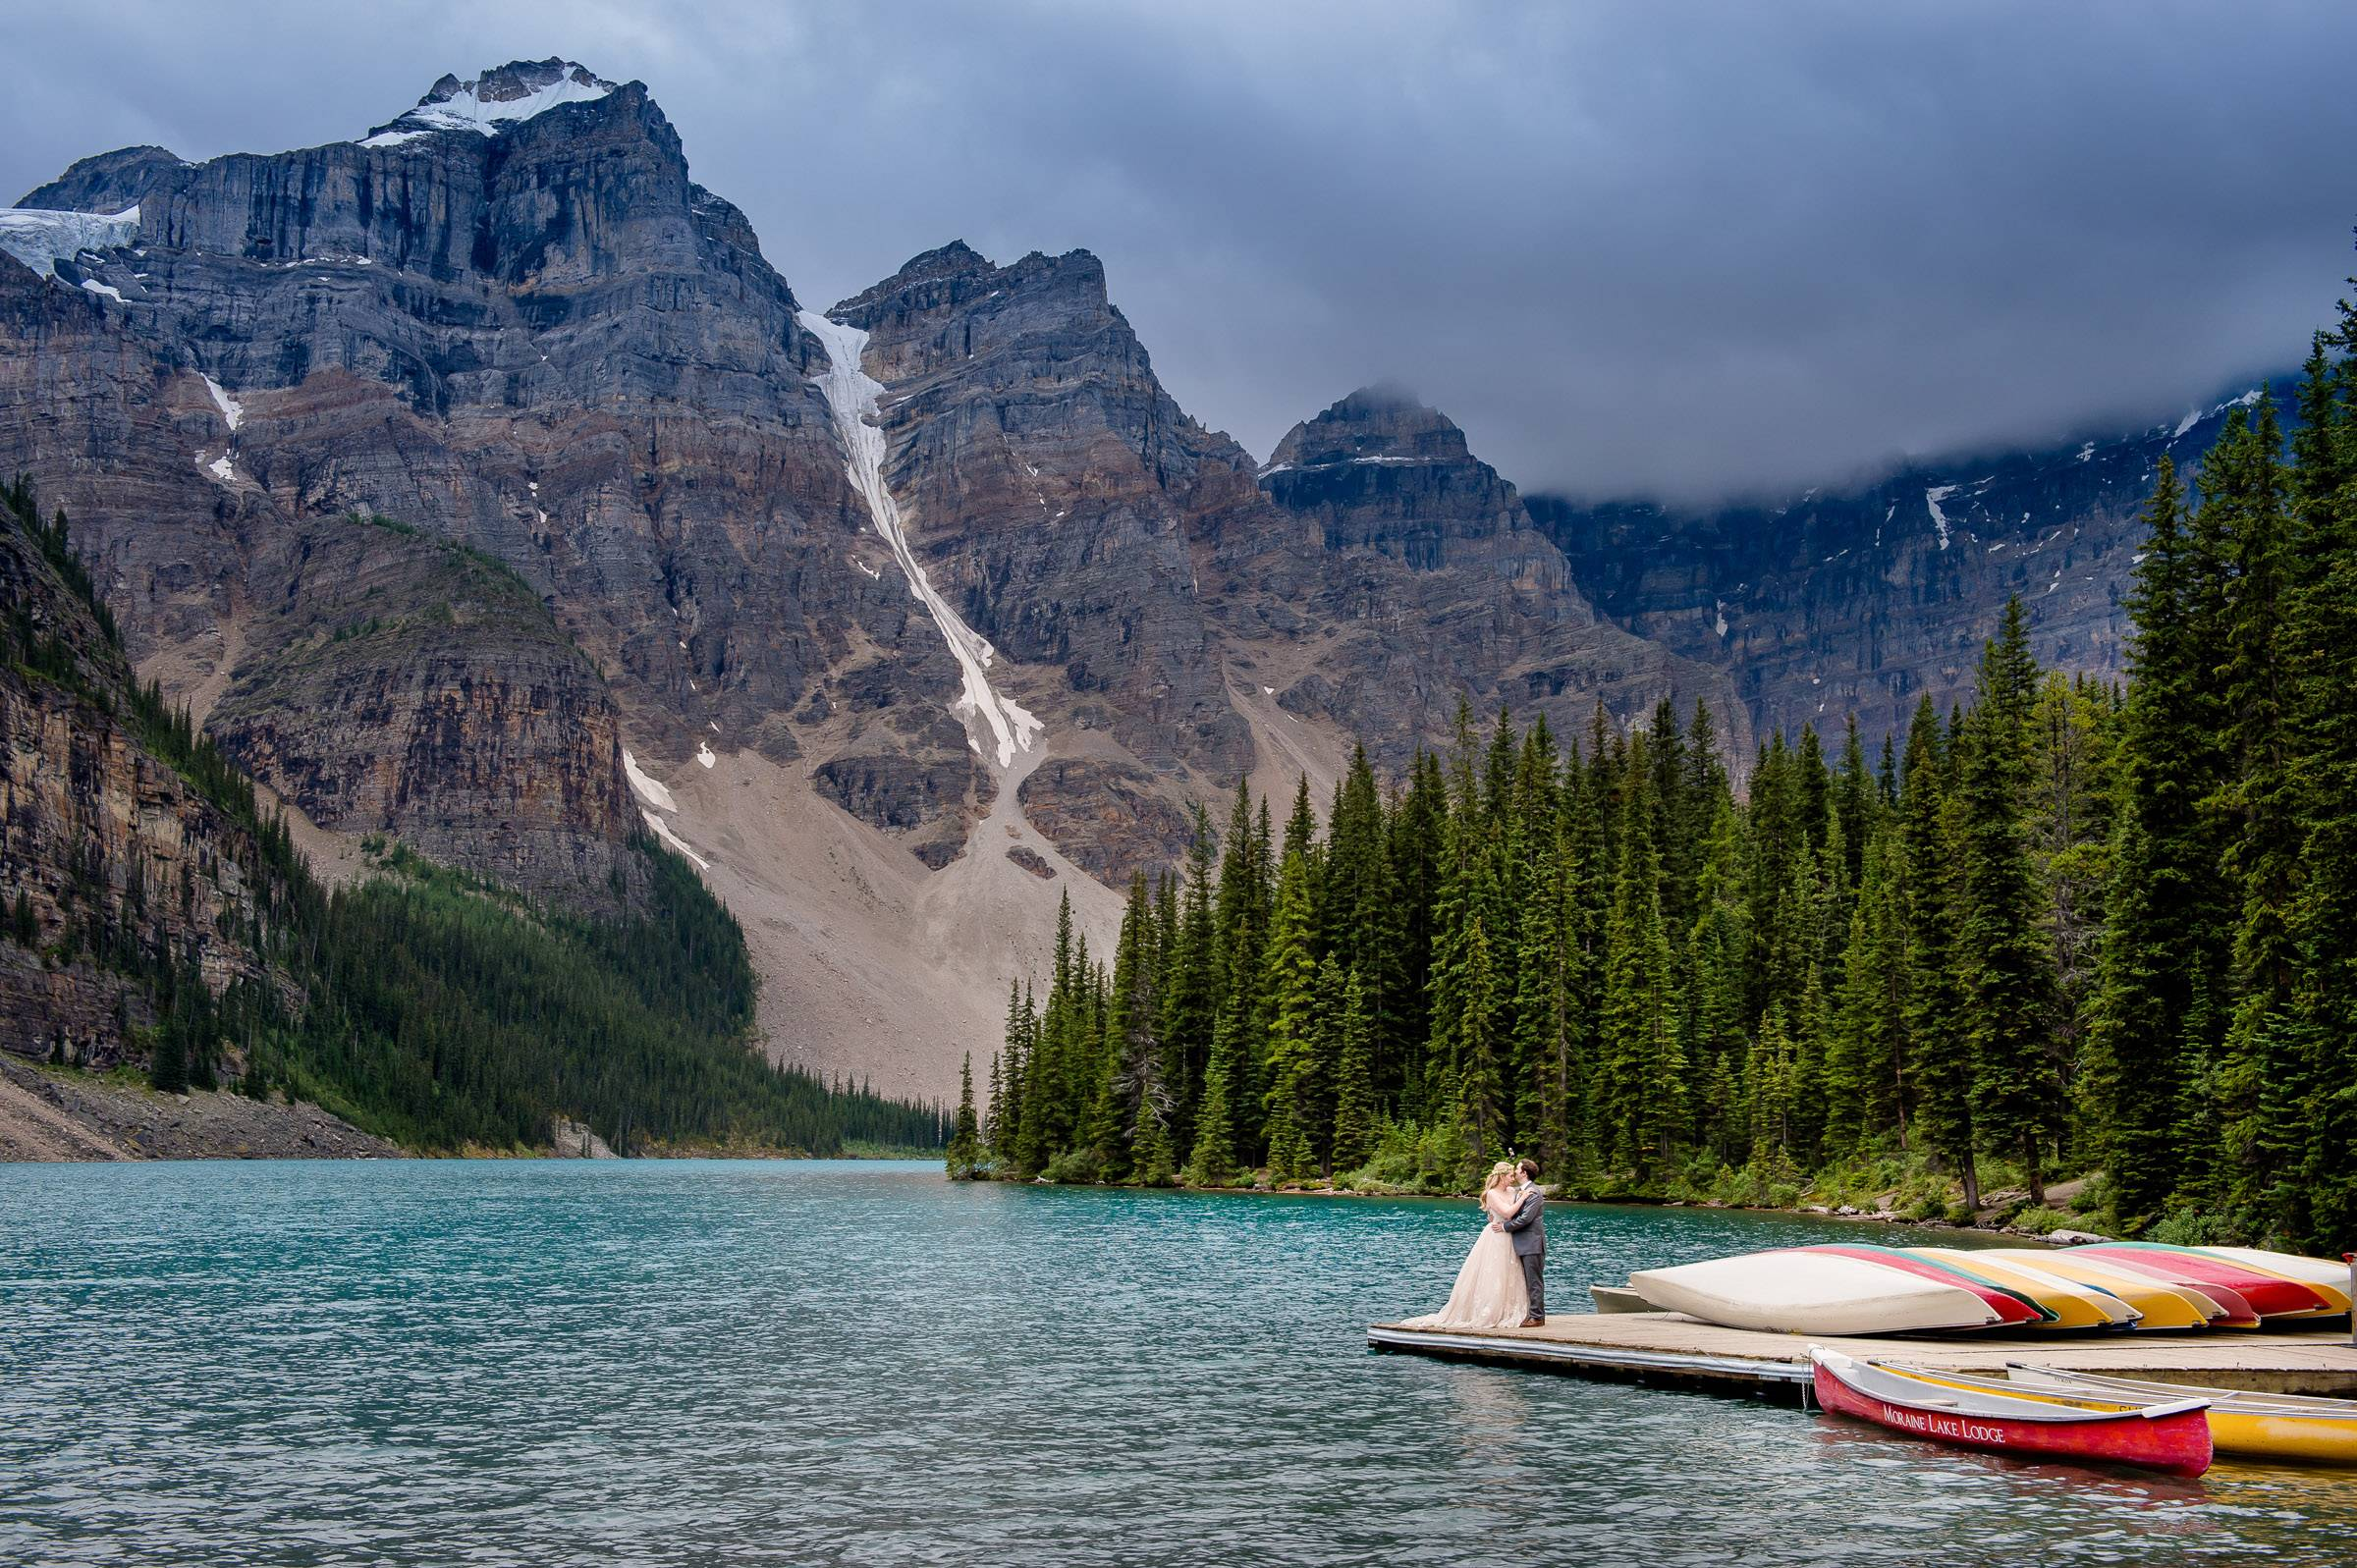 Canoe Moraine Lake Profile Portfolio Canoe Moraine Lake